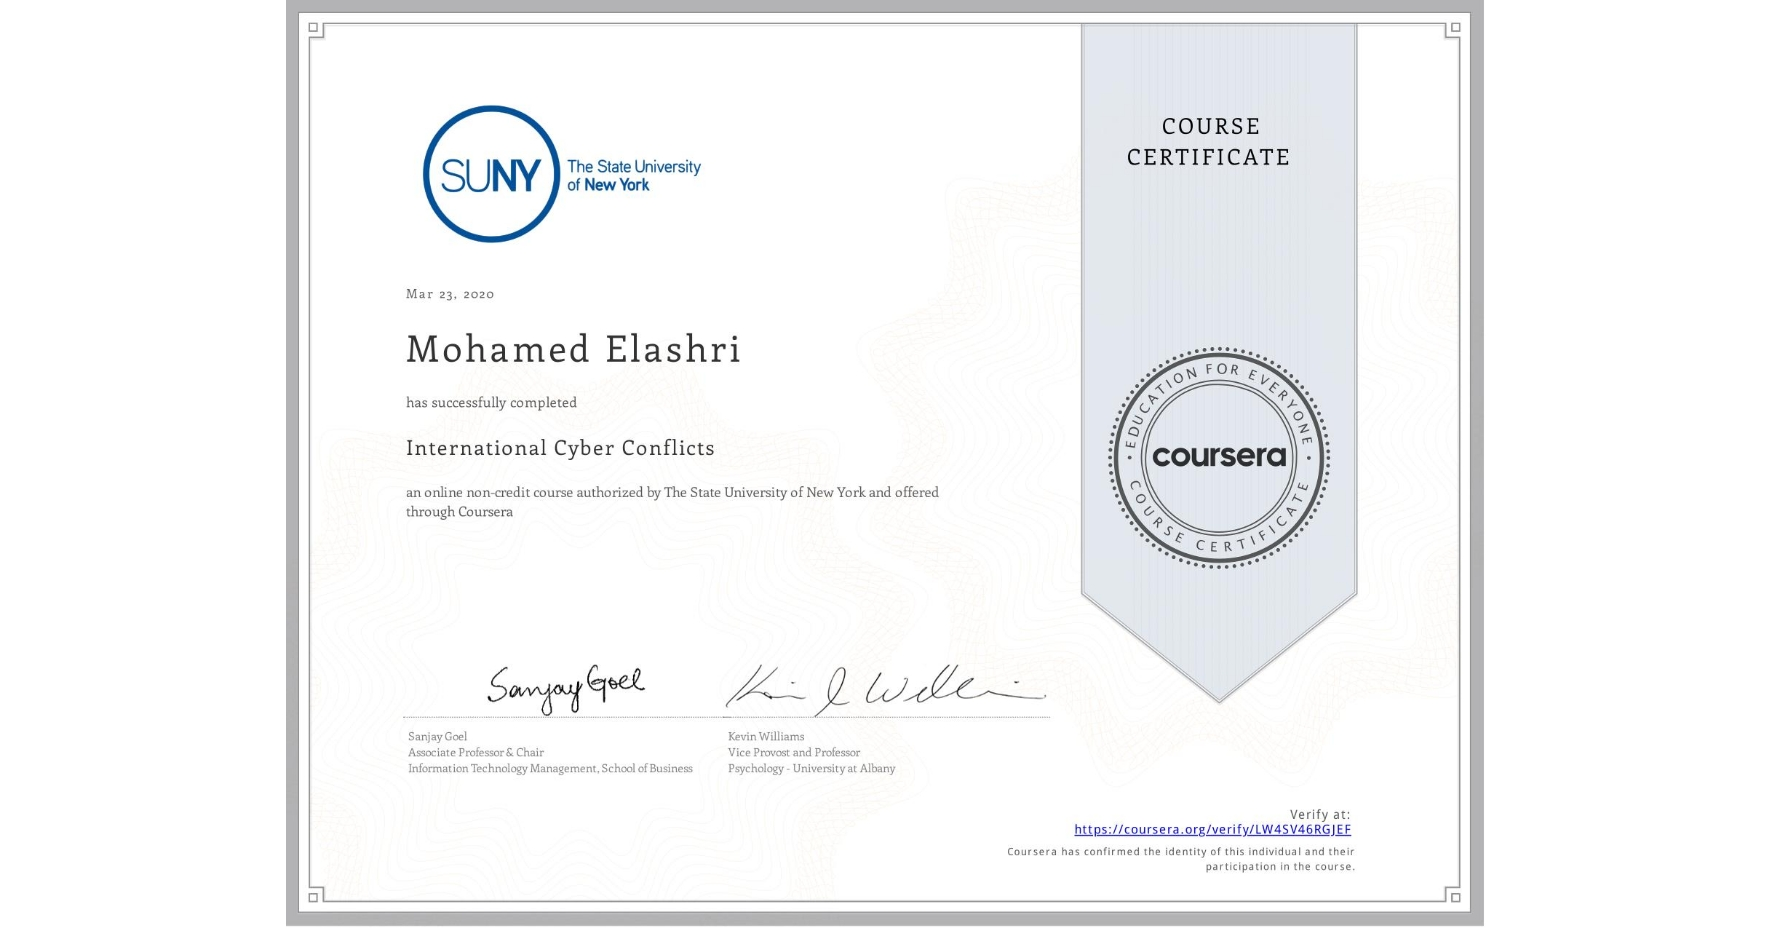 View certificate for Mohamed Elashri, International Cyber Conflicts, an online non-credit course authorized by The State University of New York and offered through Coursera